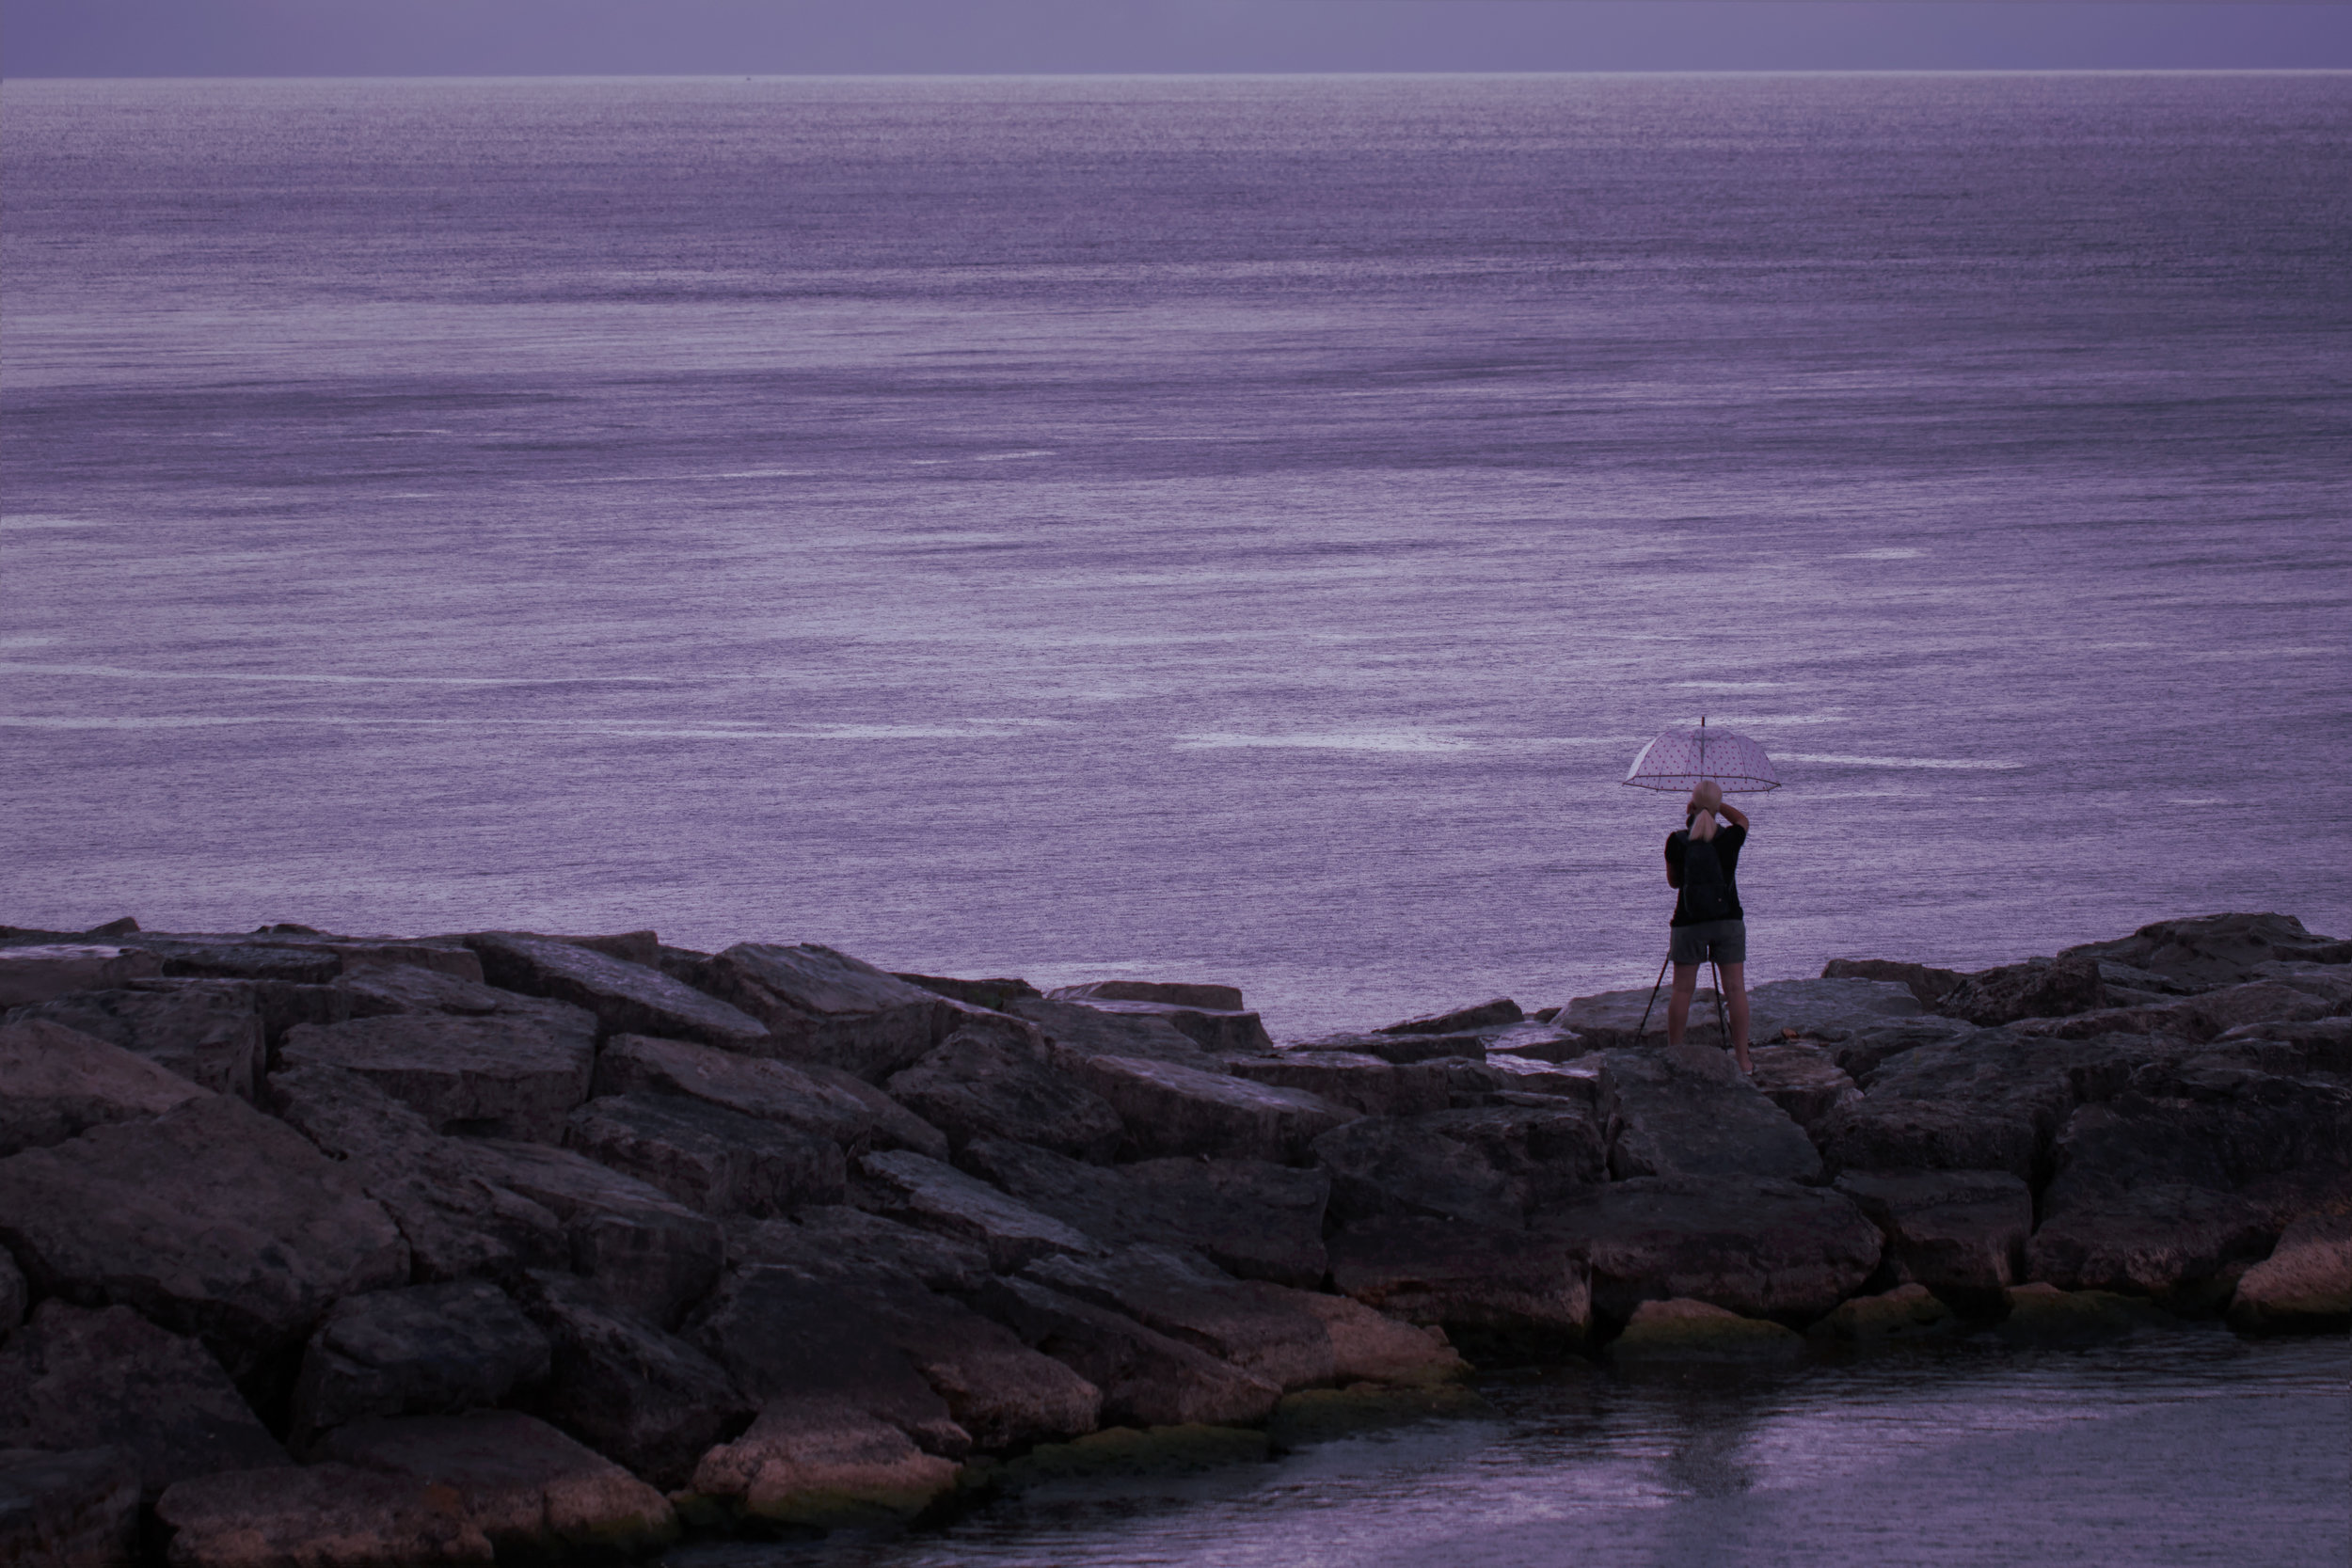 Purple Cast Sky - Photographing in the rain in magical purple light